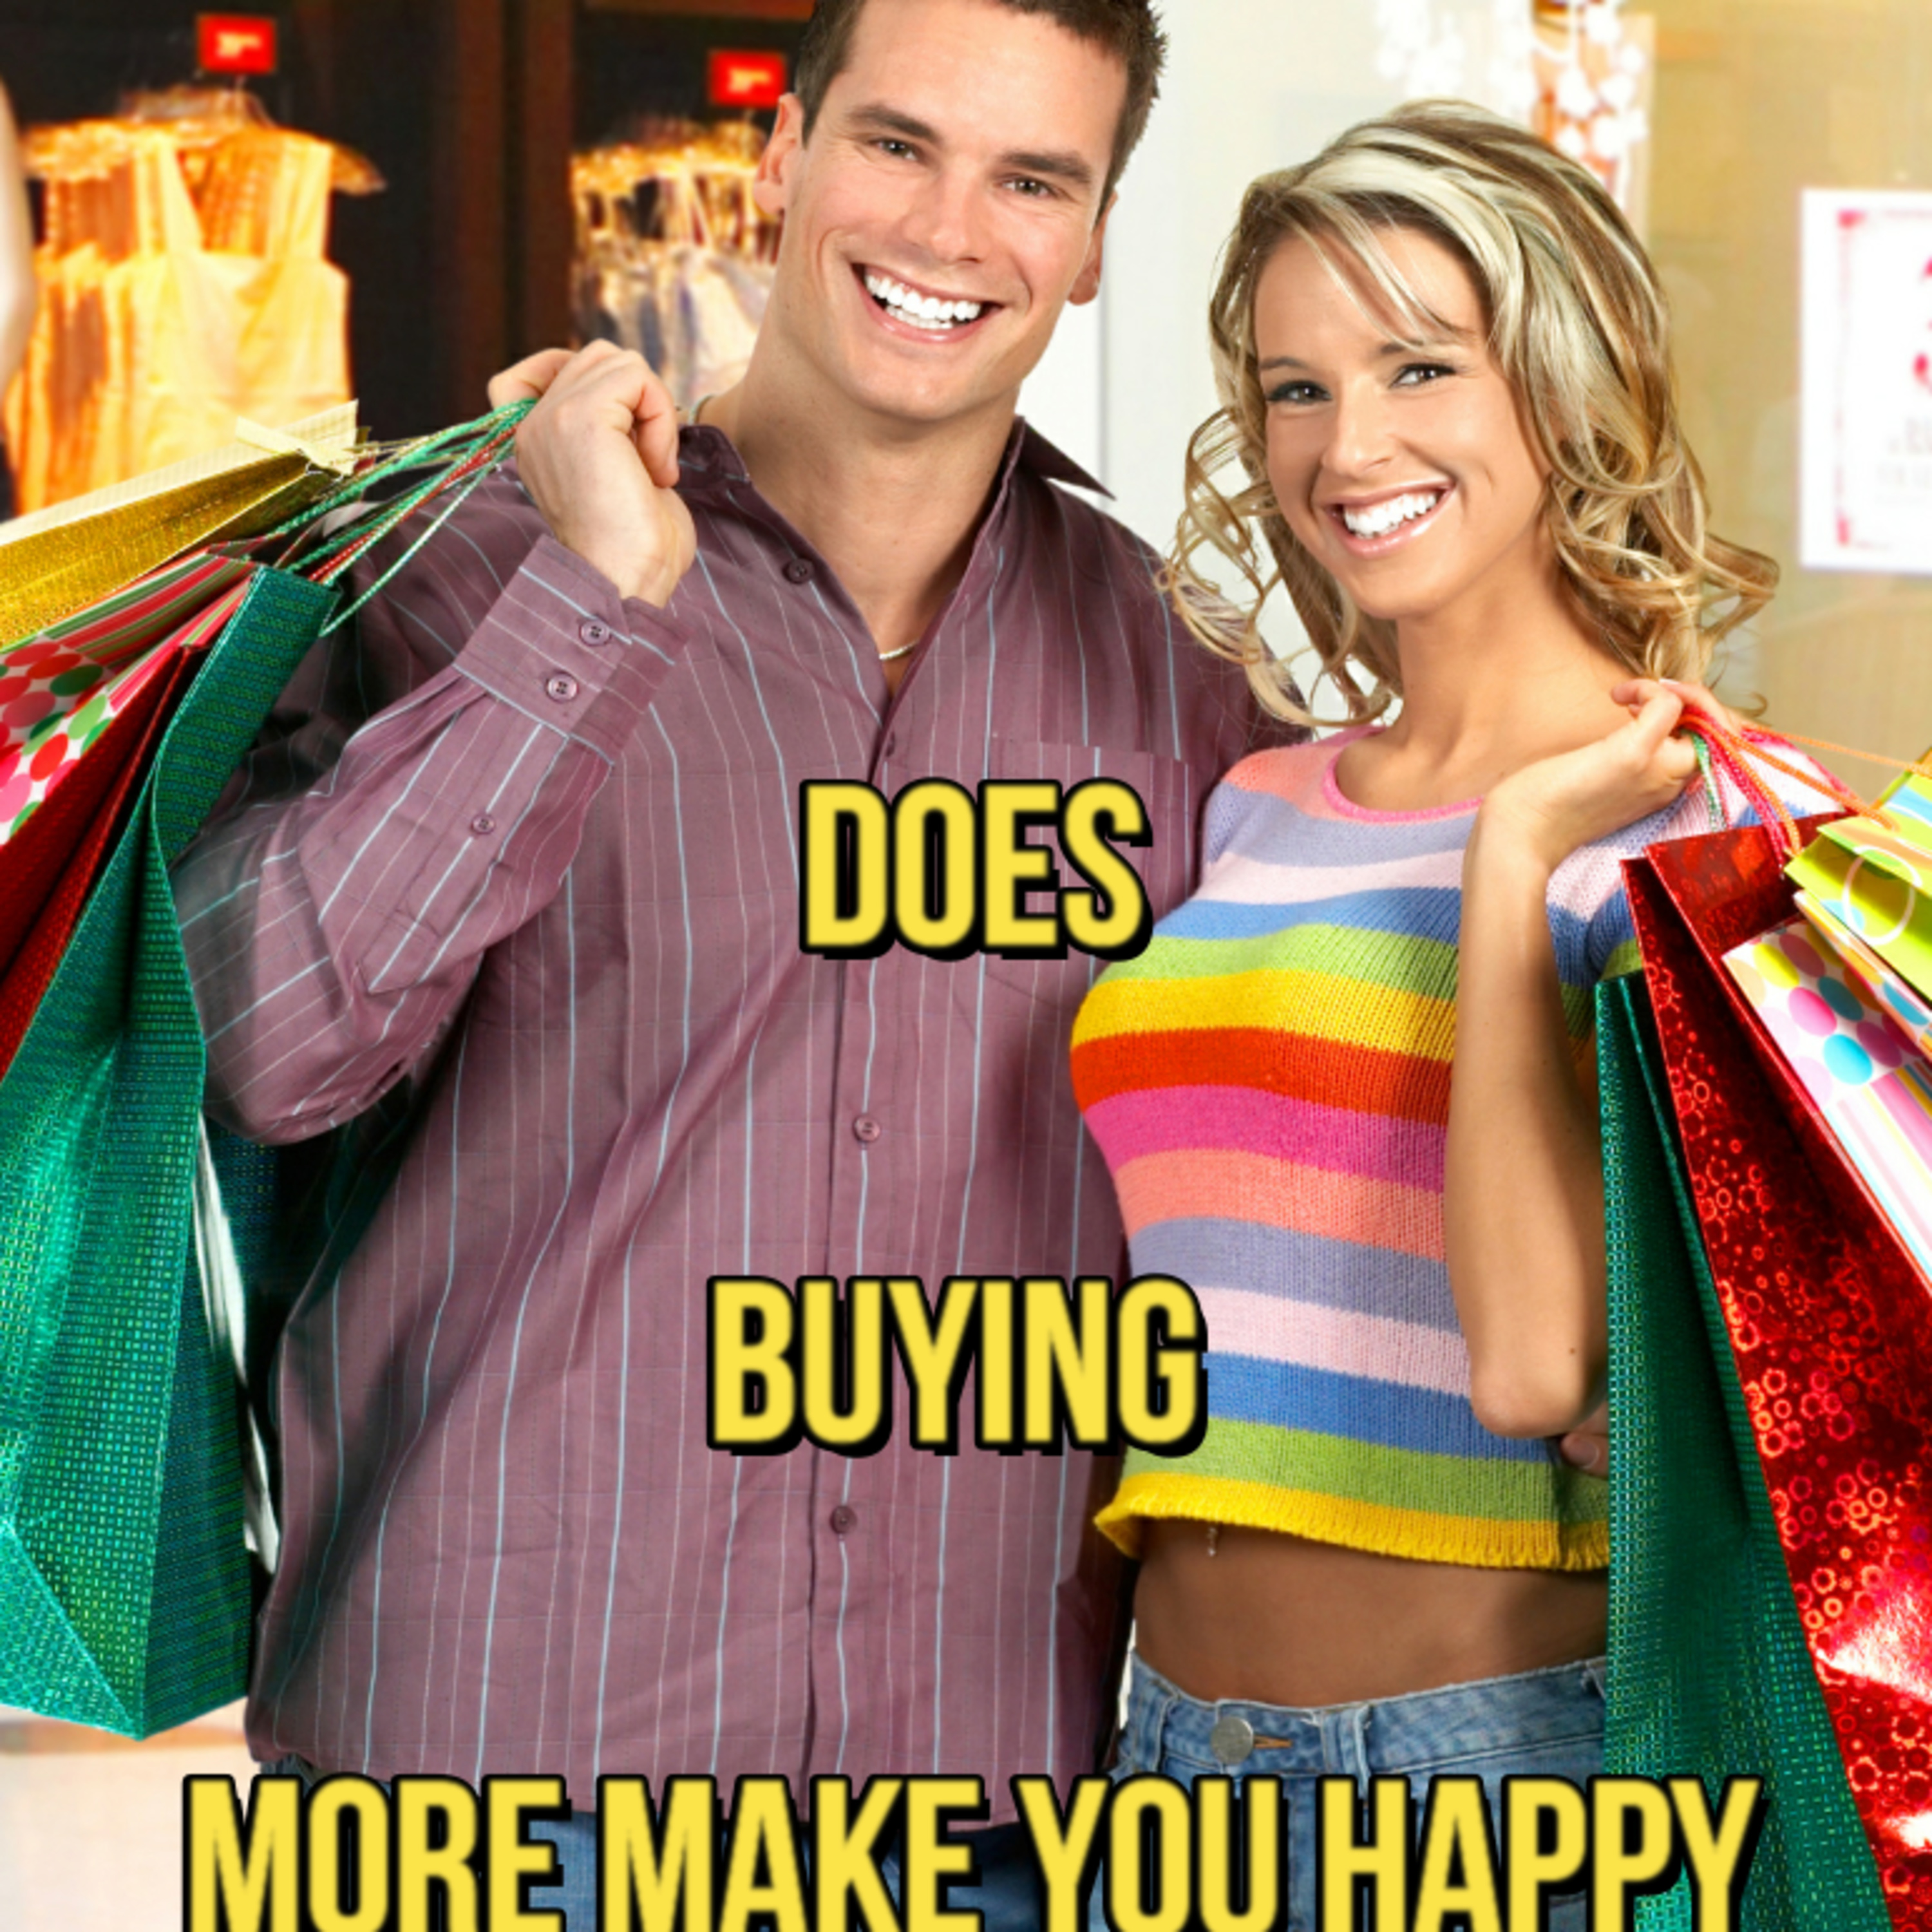 Are you happy when you buy more or less?